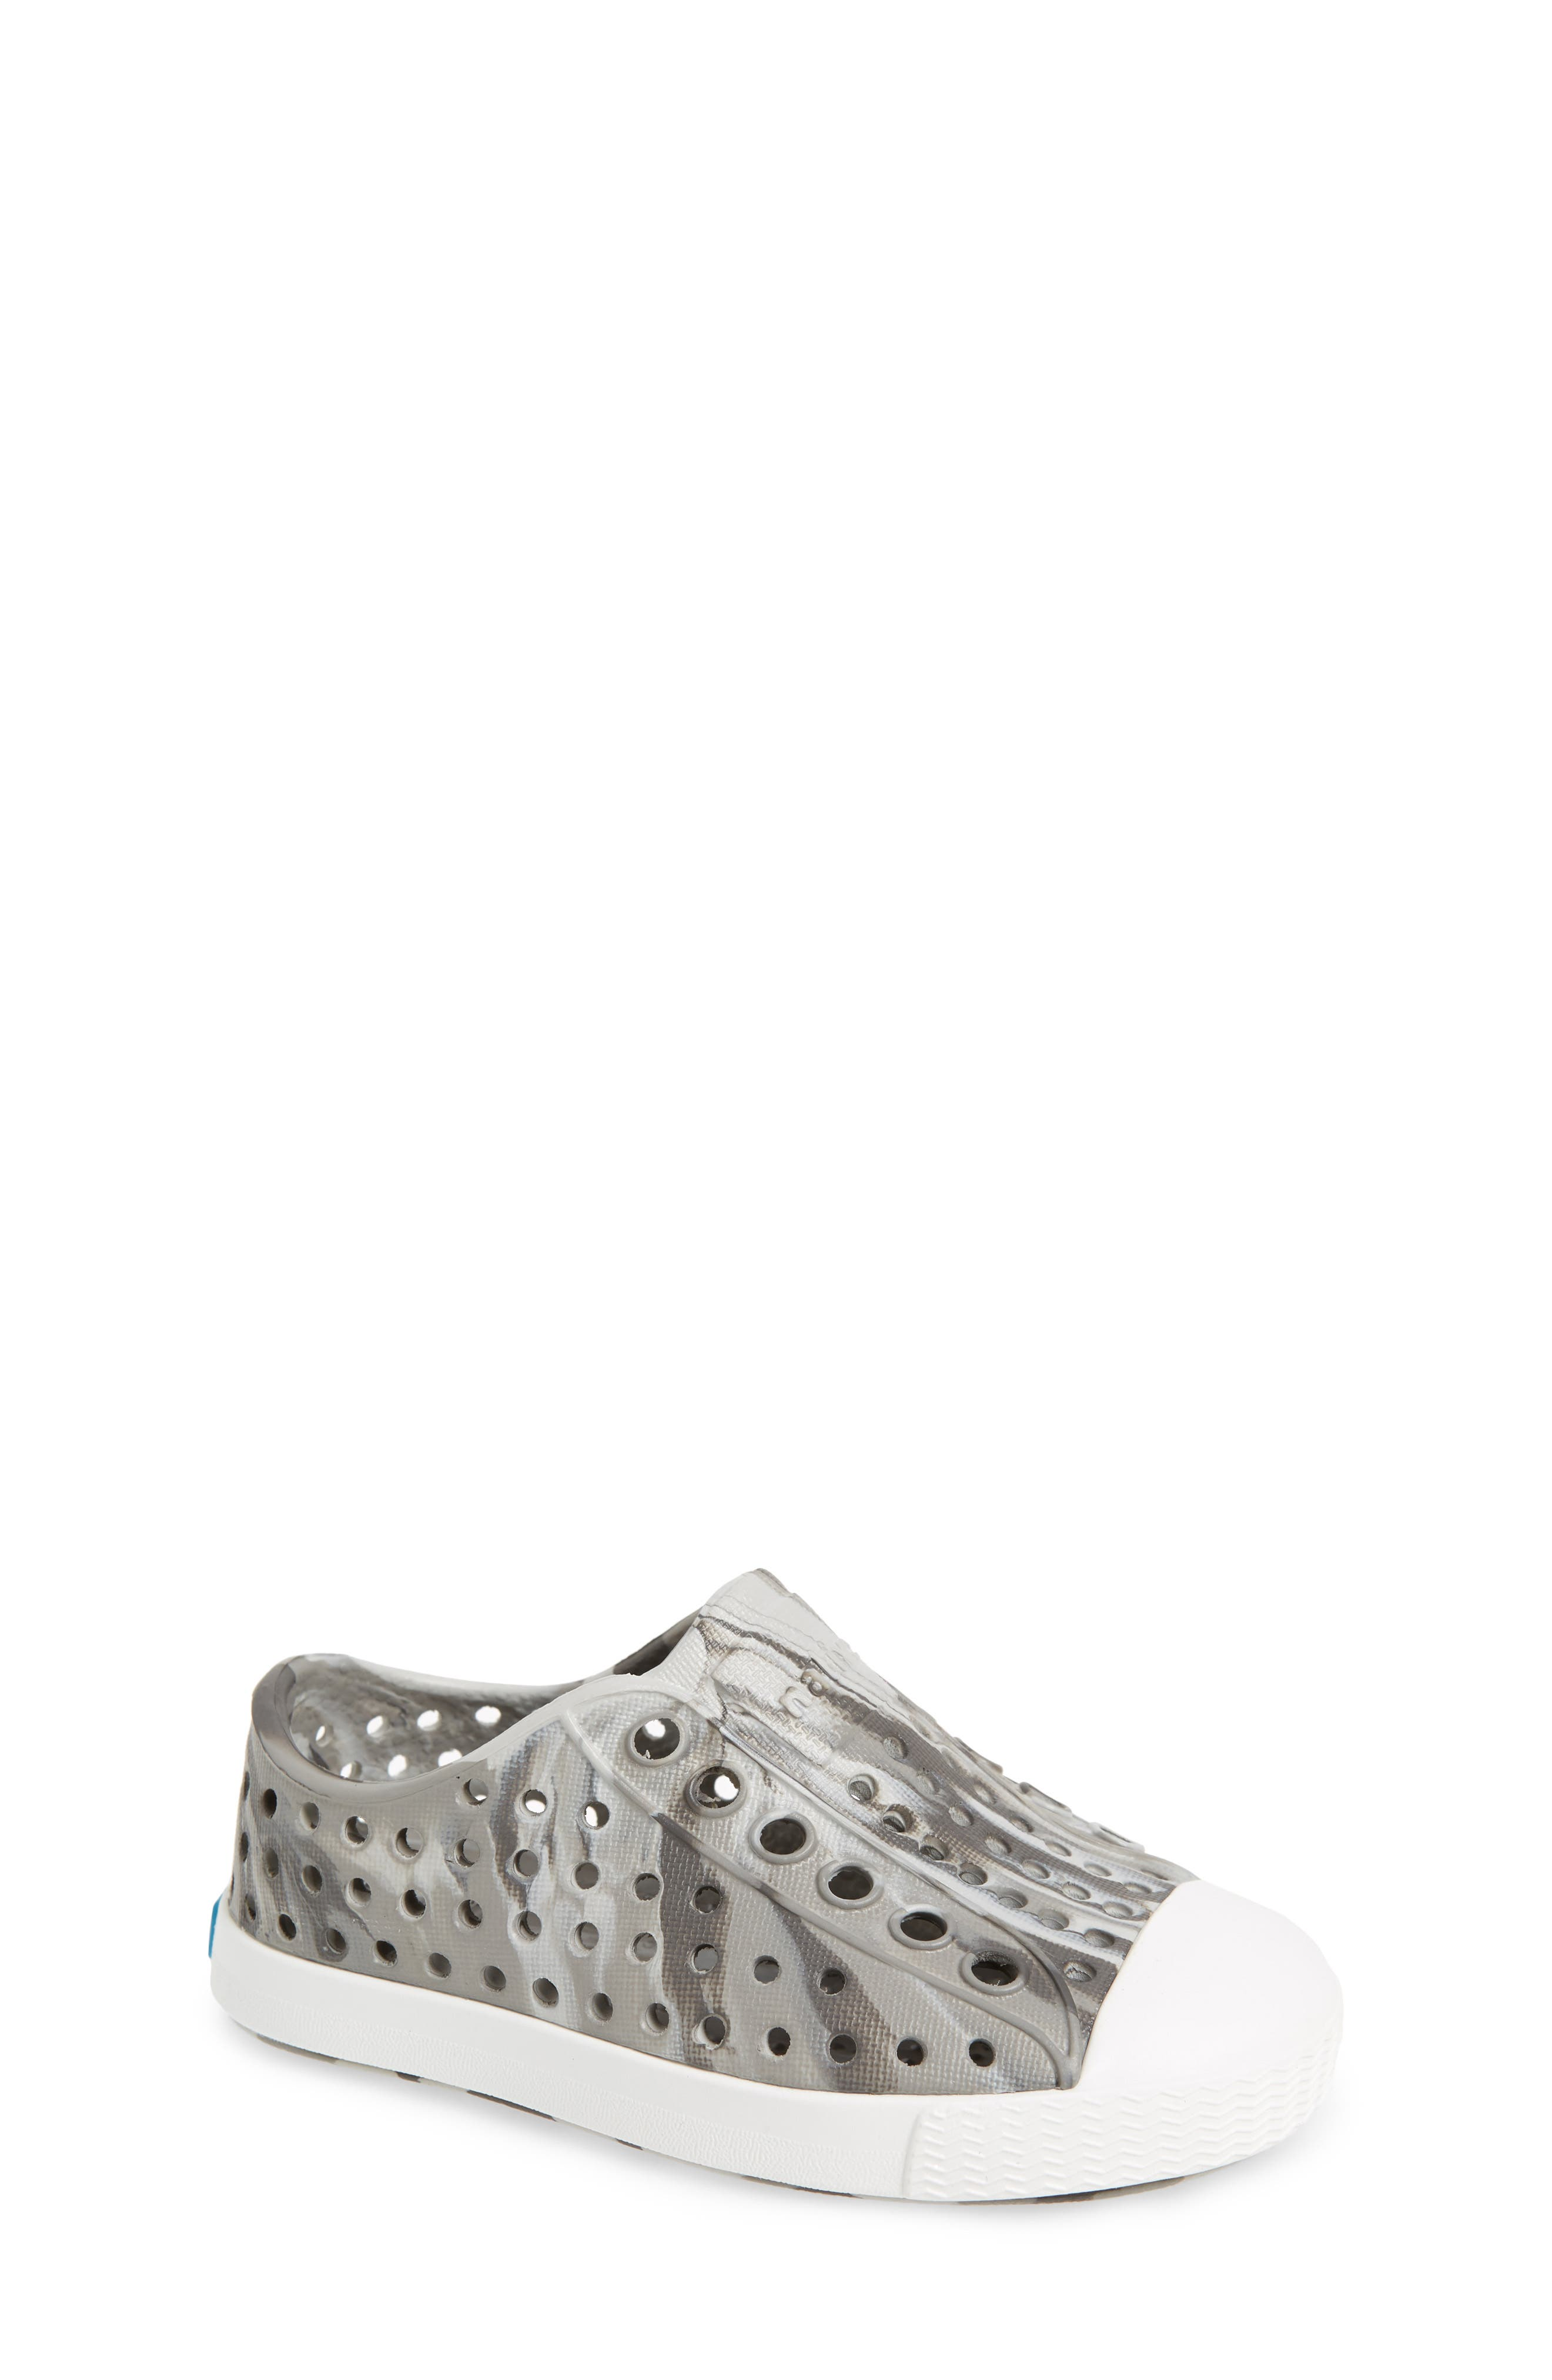 Jefferson - Marbled Perforated Slip-On,                             Main thumbnail 1, color,                             Grey/ Shell White/ Marble